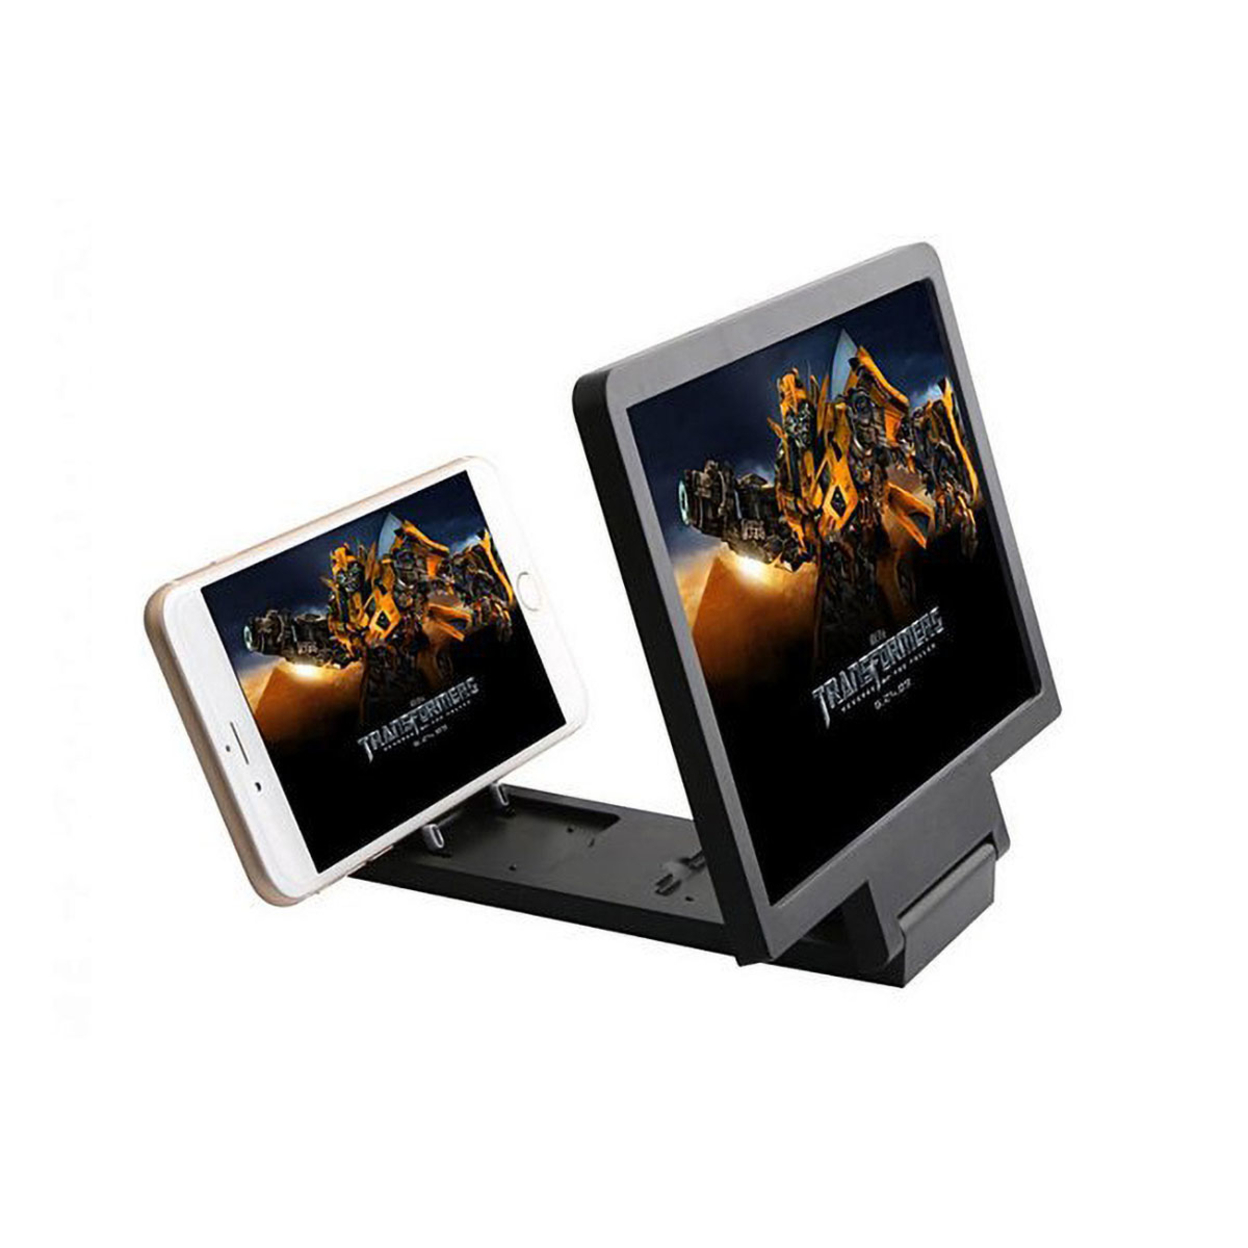 3D Screen Enlarger And Viewer For Your Smart Phone - Black 55ee69c7493d6fcd408b5b07